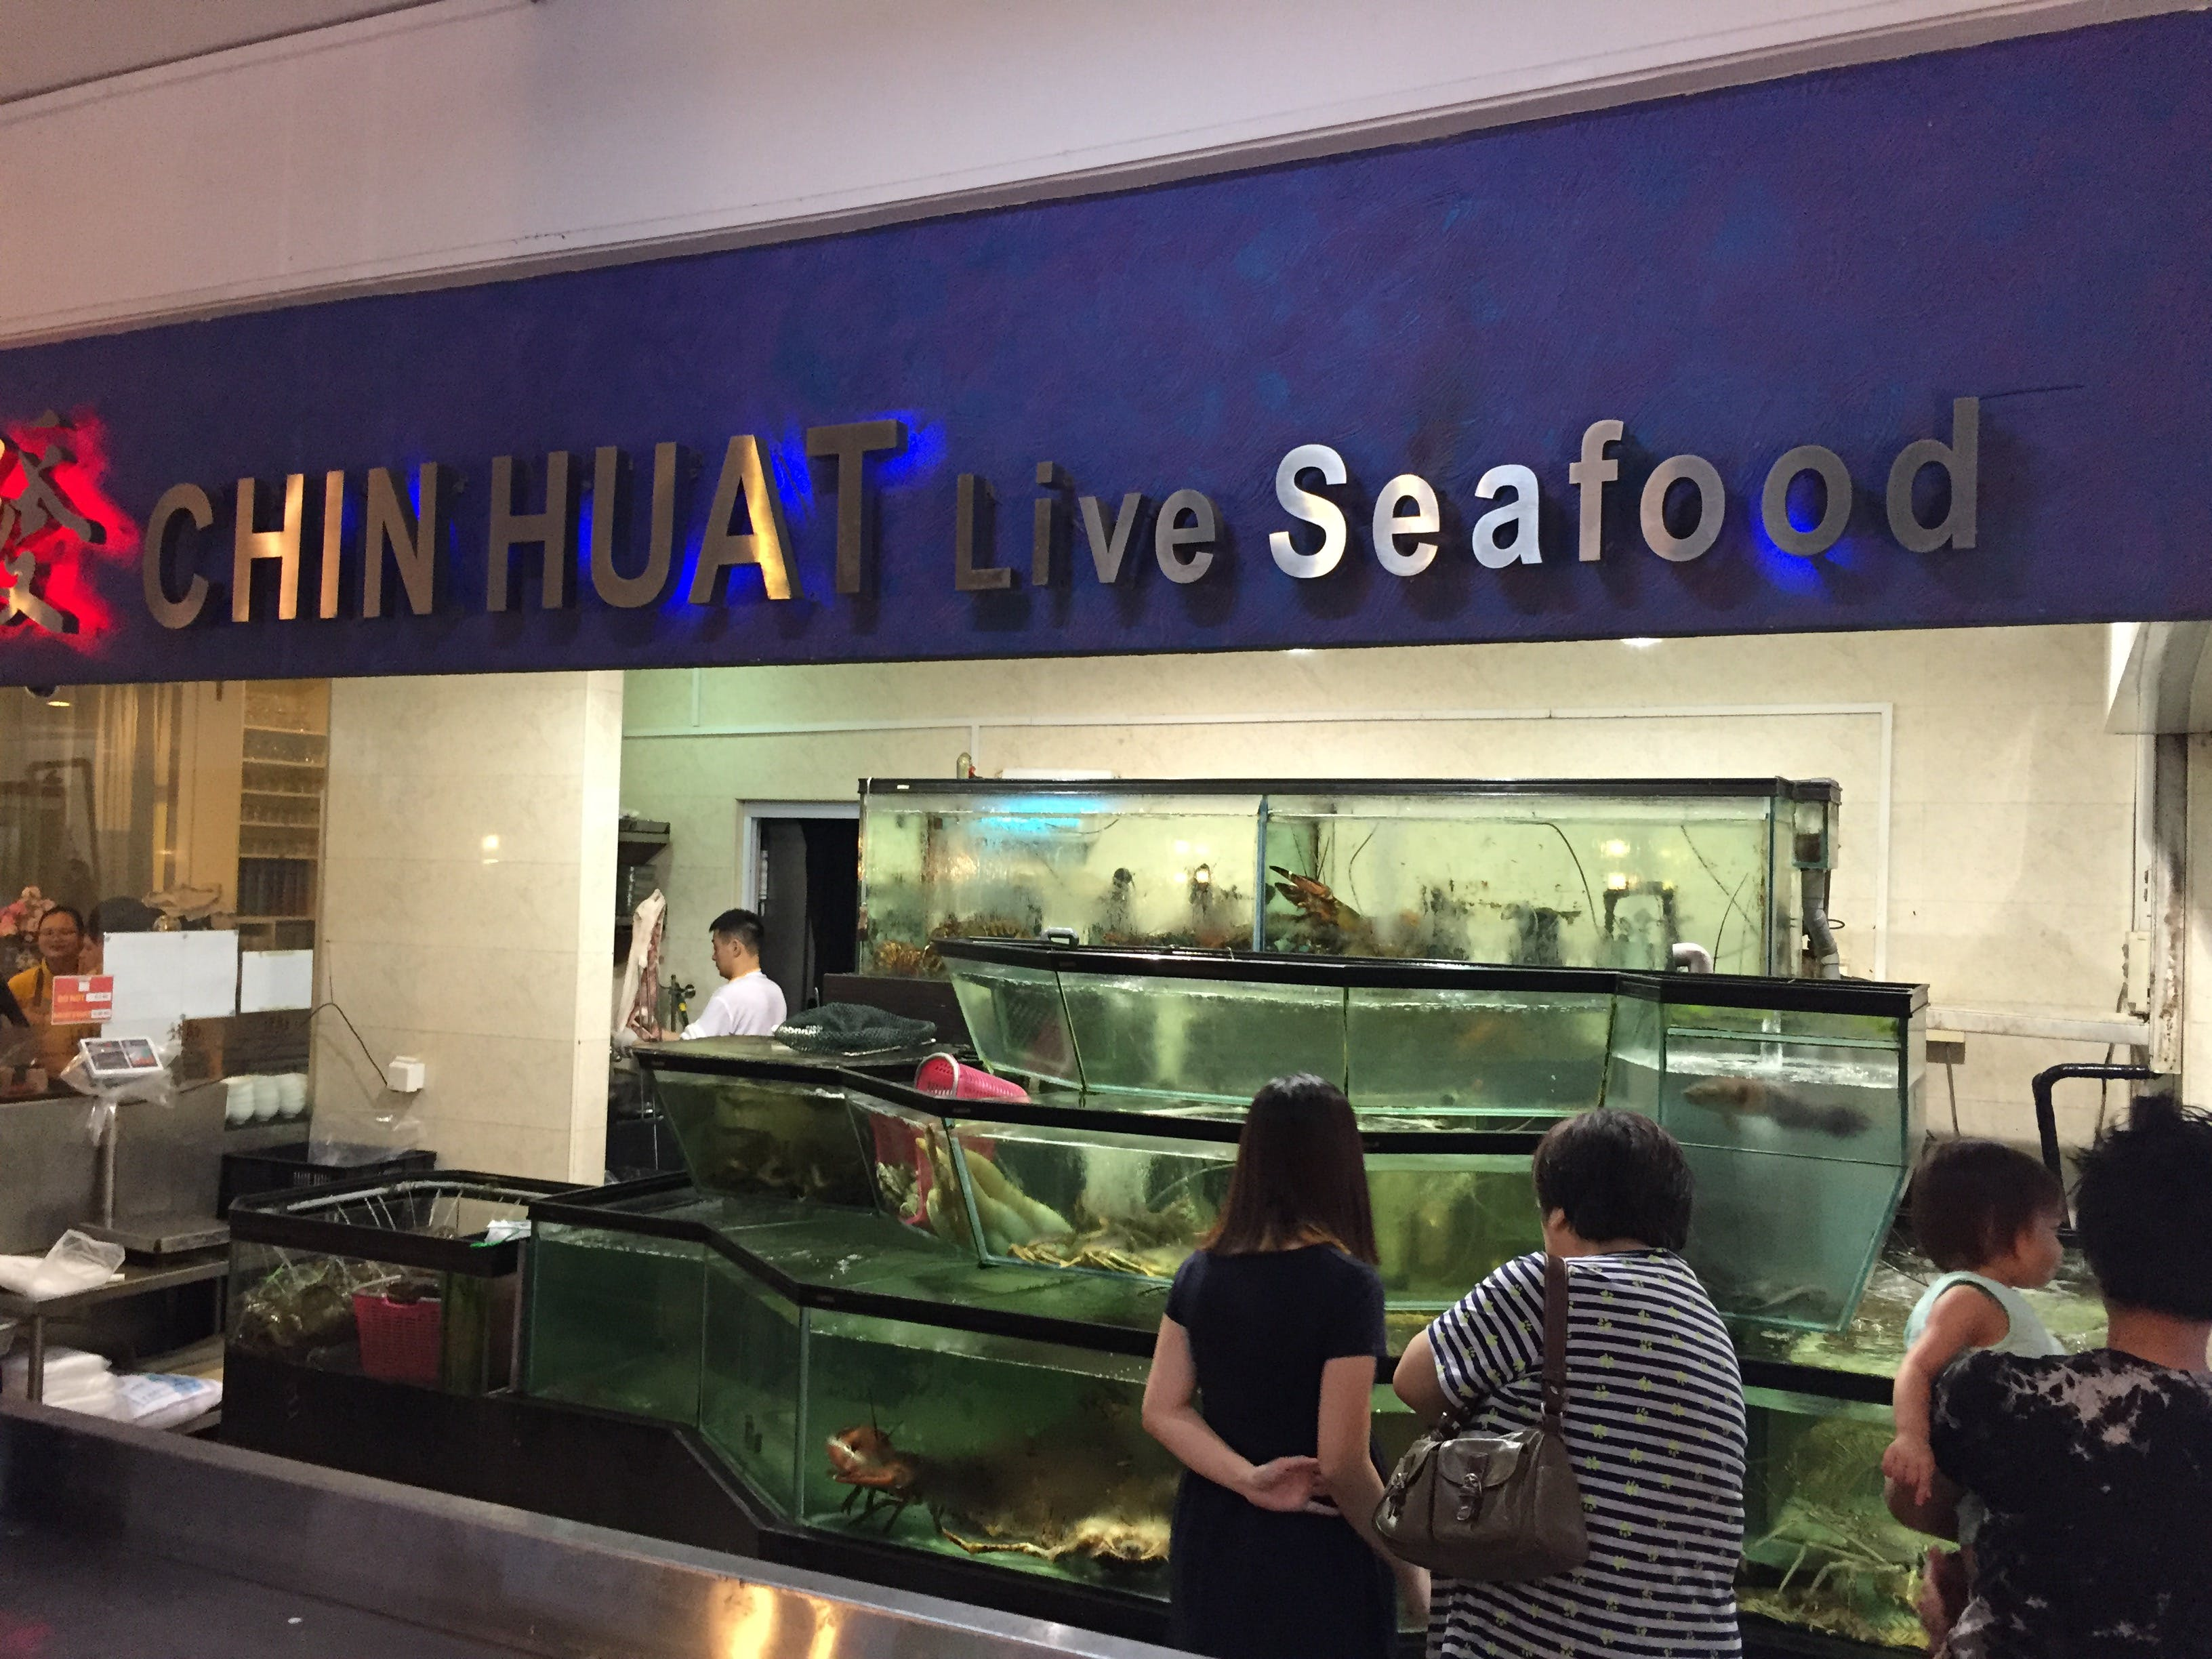 Diners chosing their catch from the tanks at Chin Huat Live Seafood